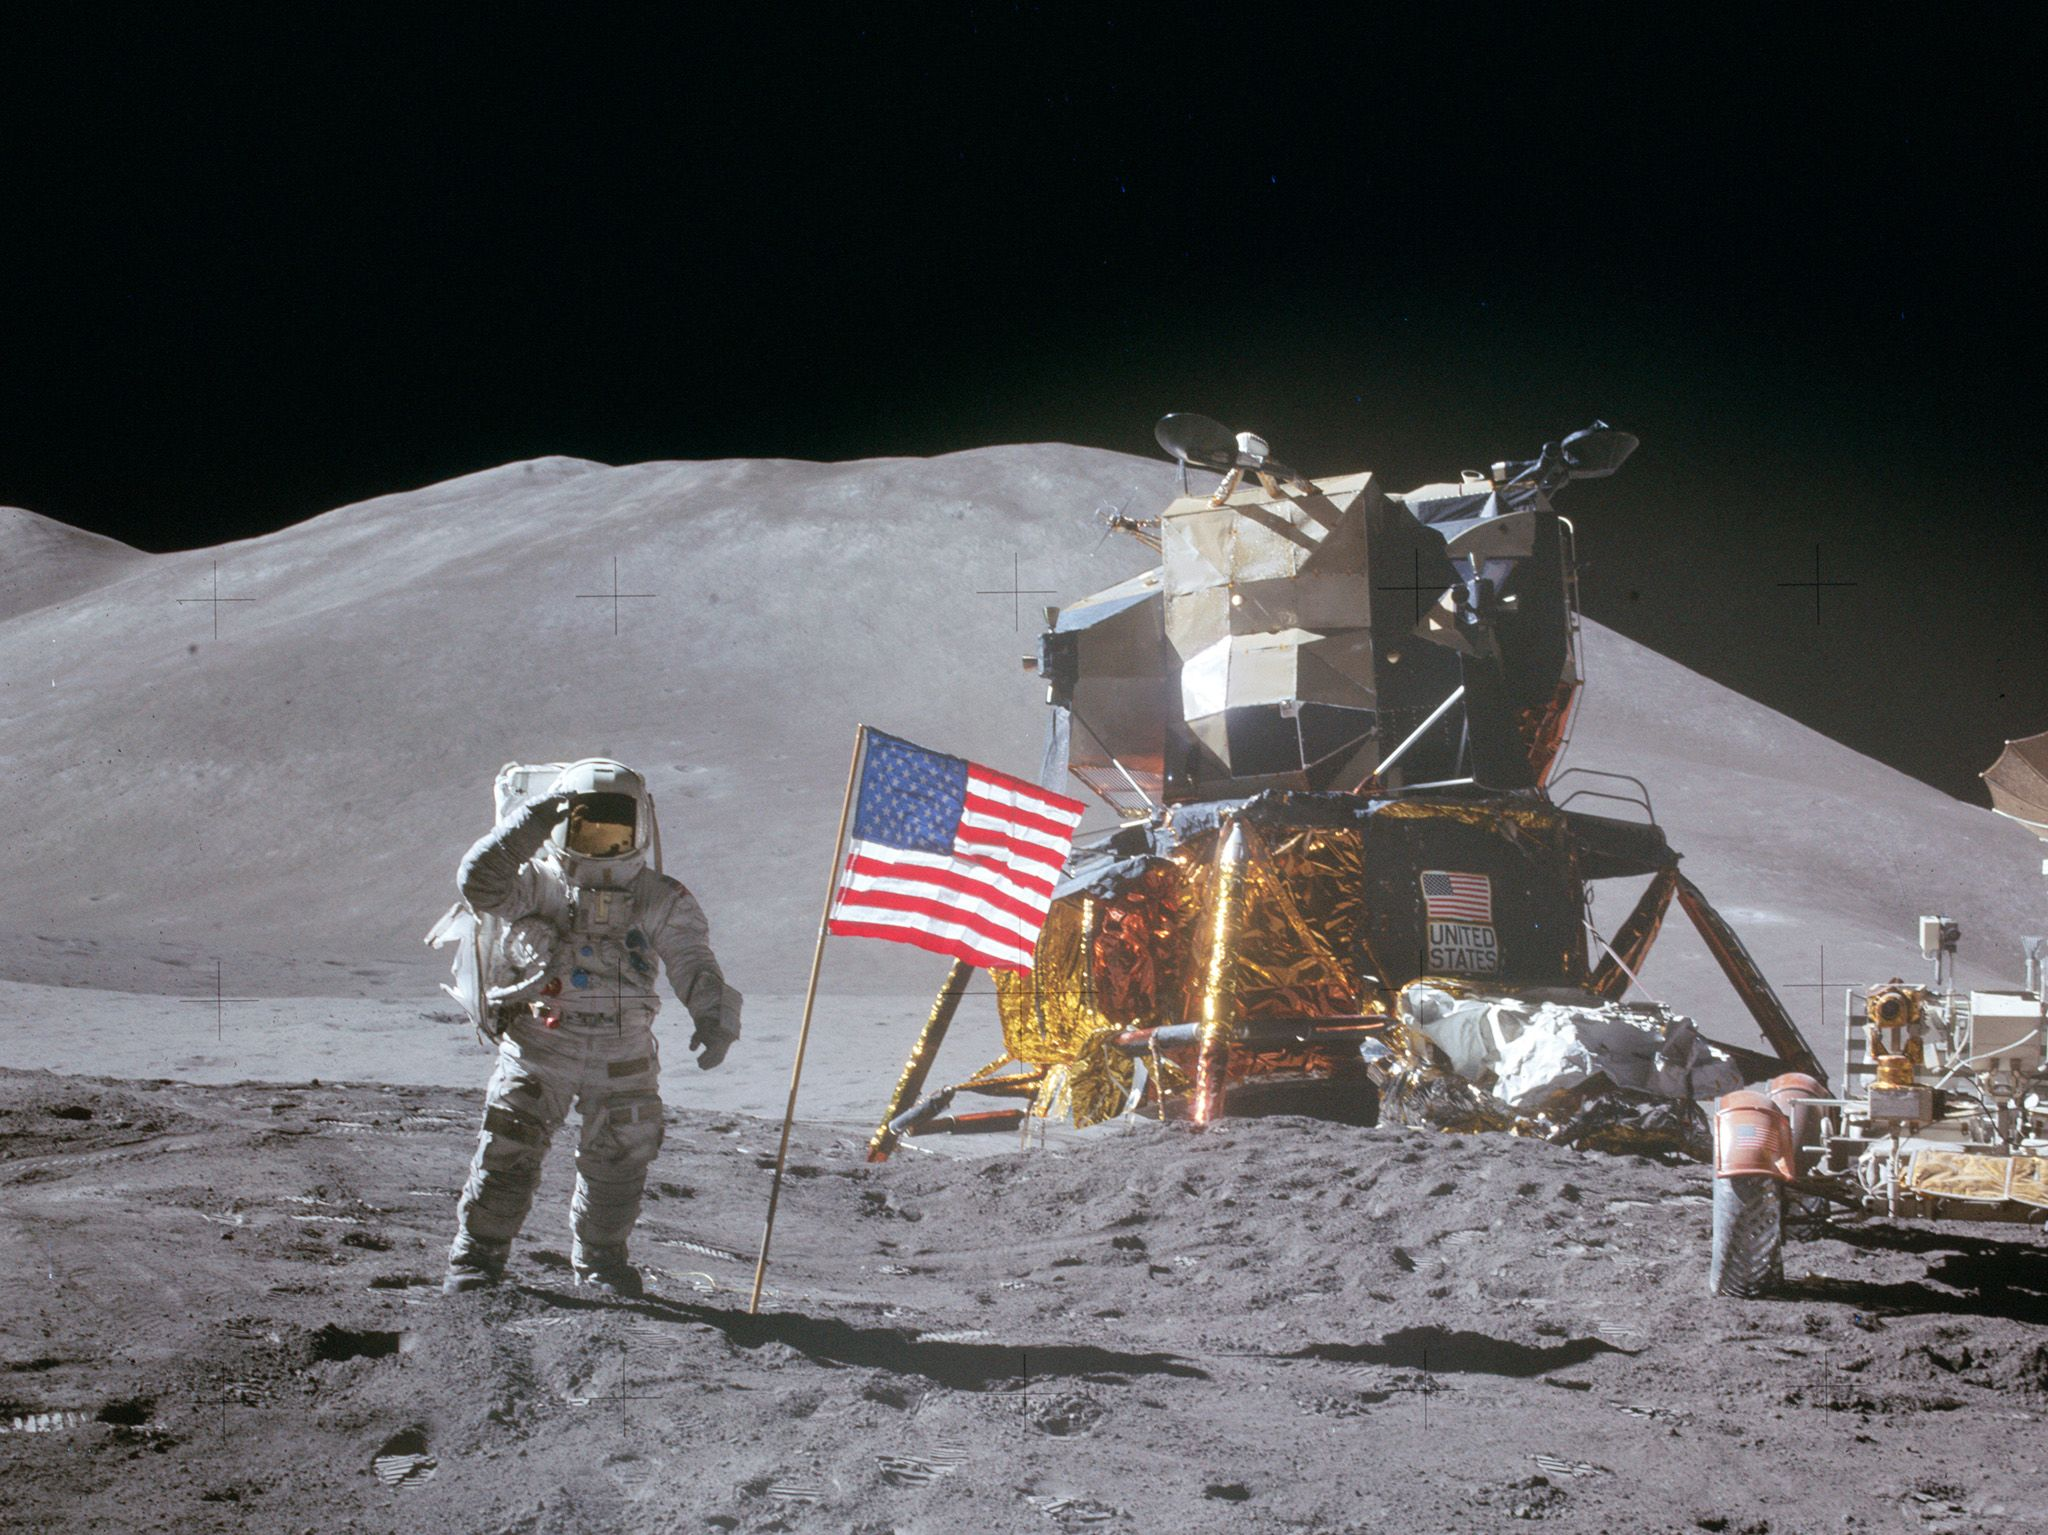 David Scott on Moon during Apollo 15.  This image is from Apollo: Missions to the Moon. [Photo of the day - July 2019]